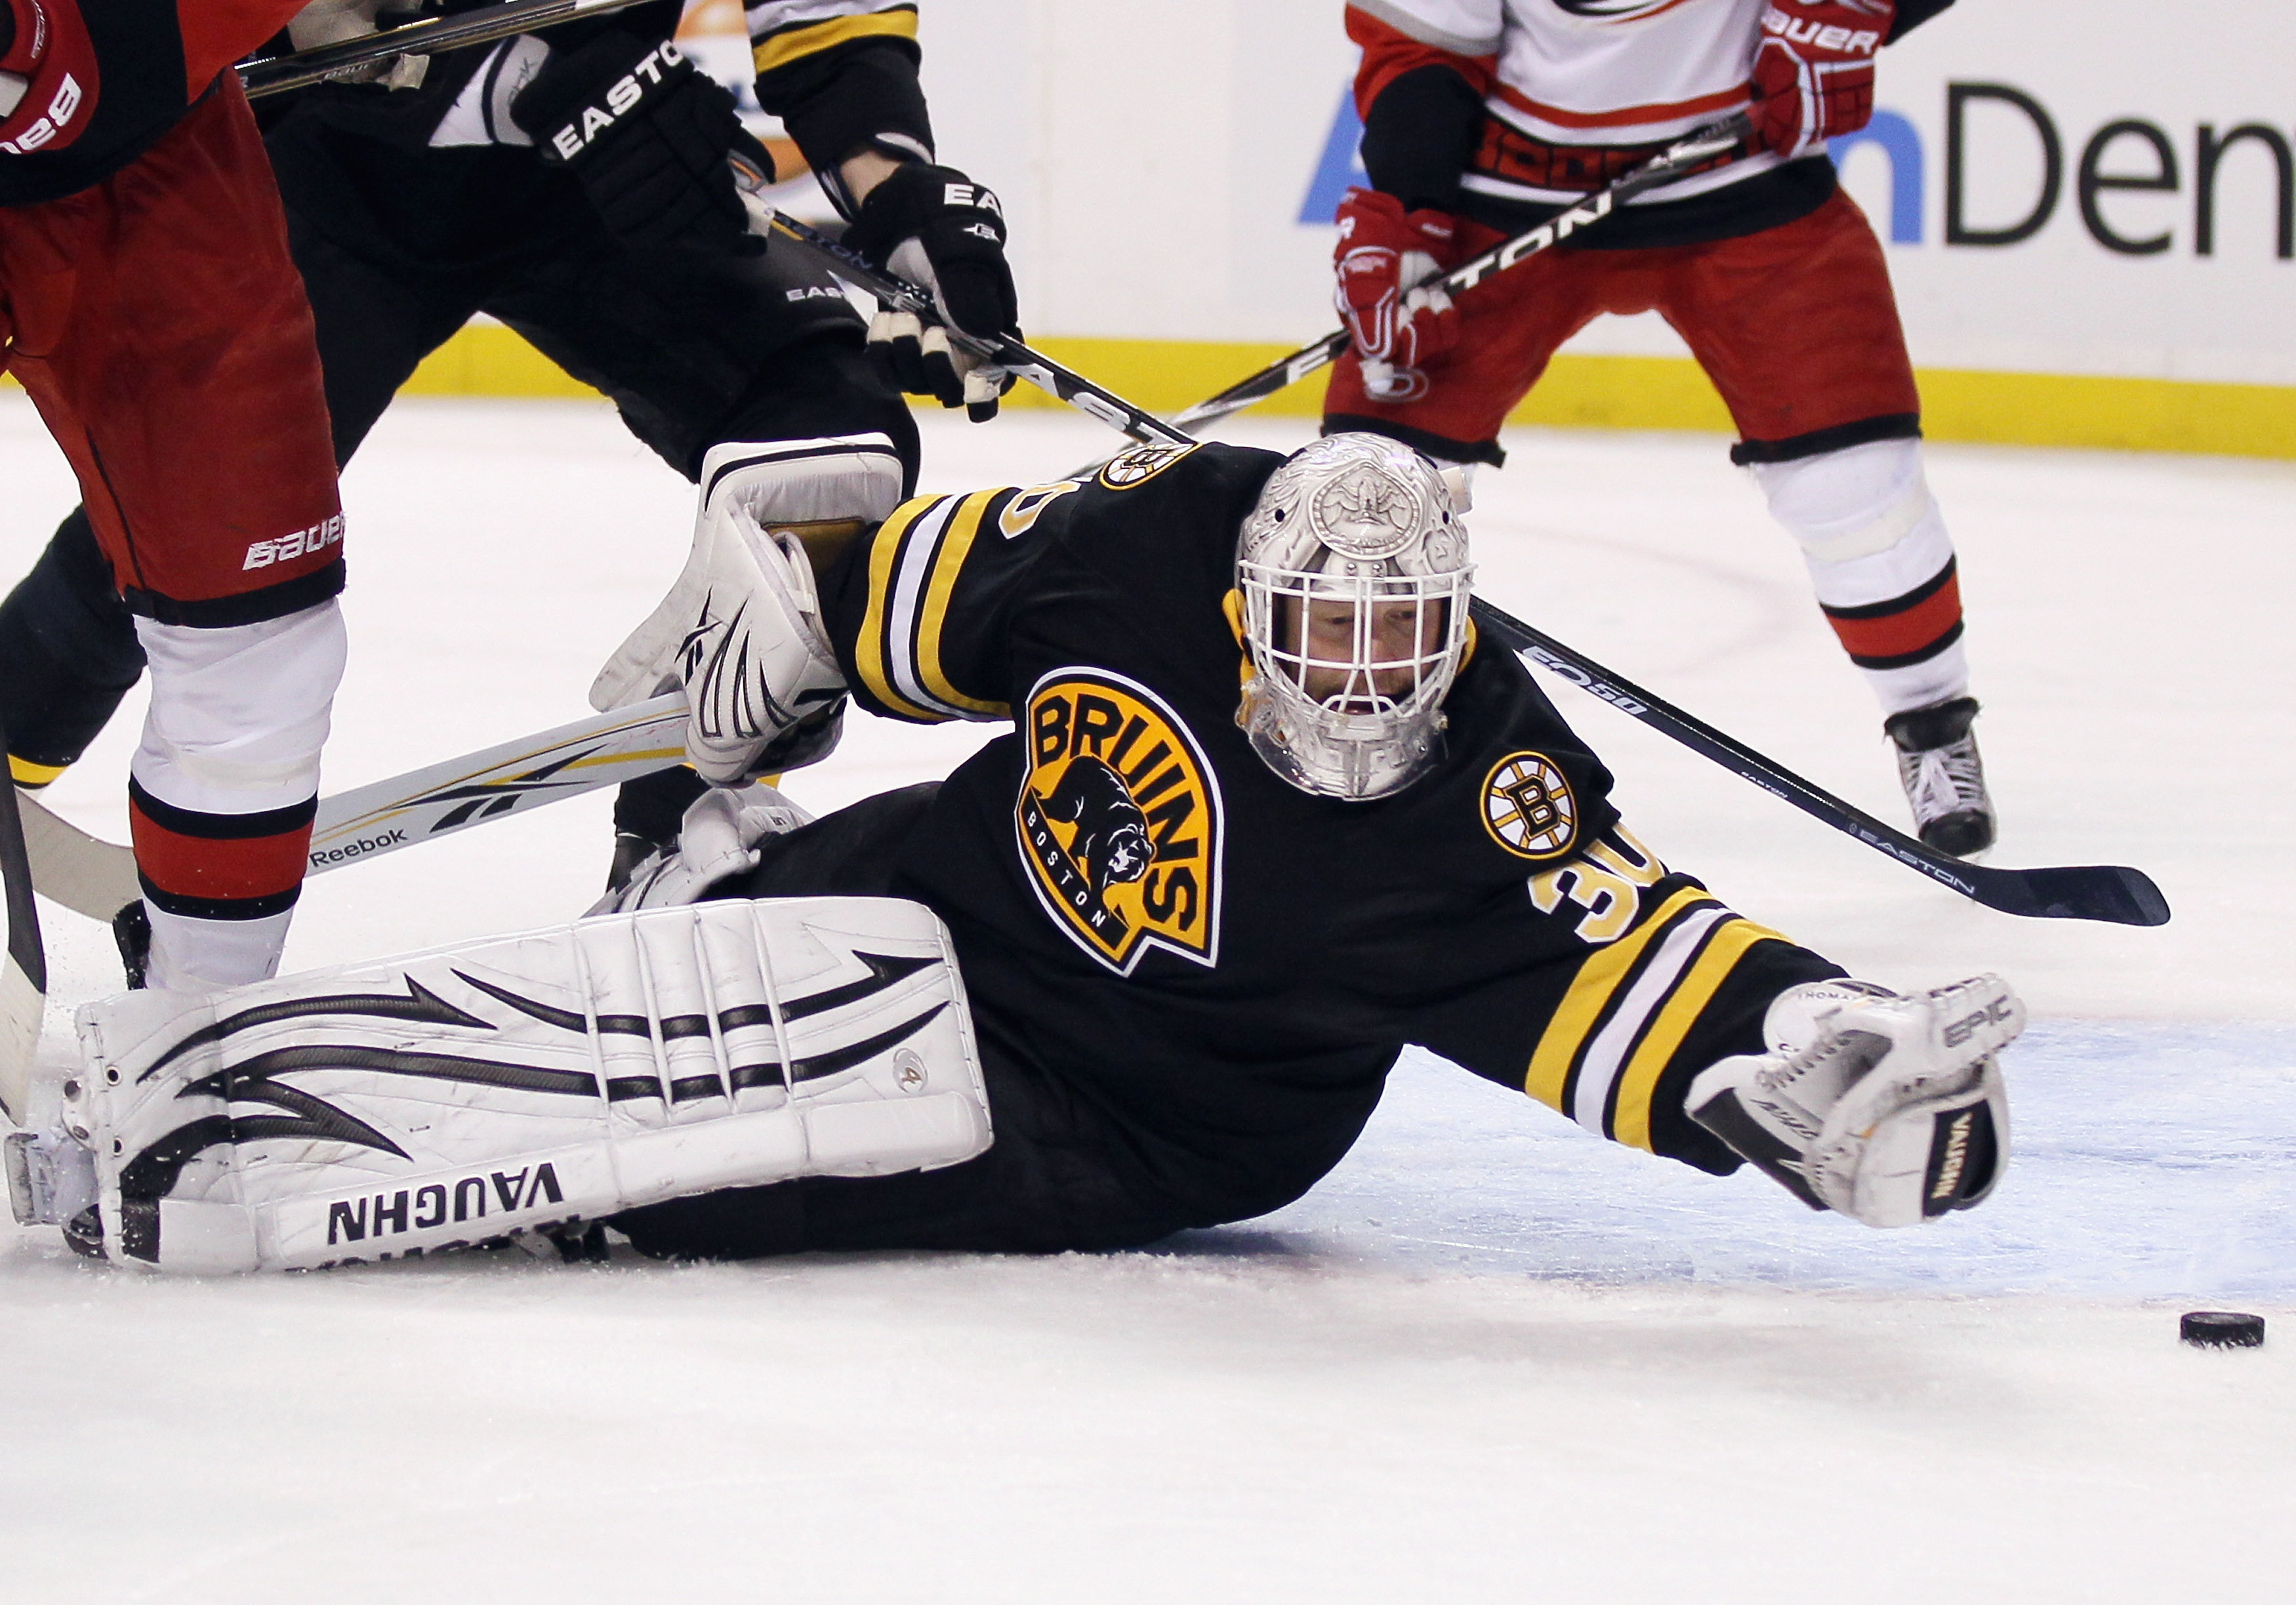 Tim Thomas never gives up on the puck, and never gave up his dream of starting in the NHL.